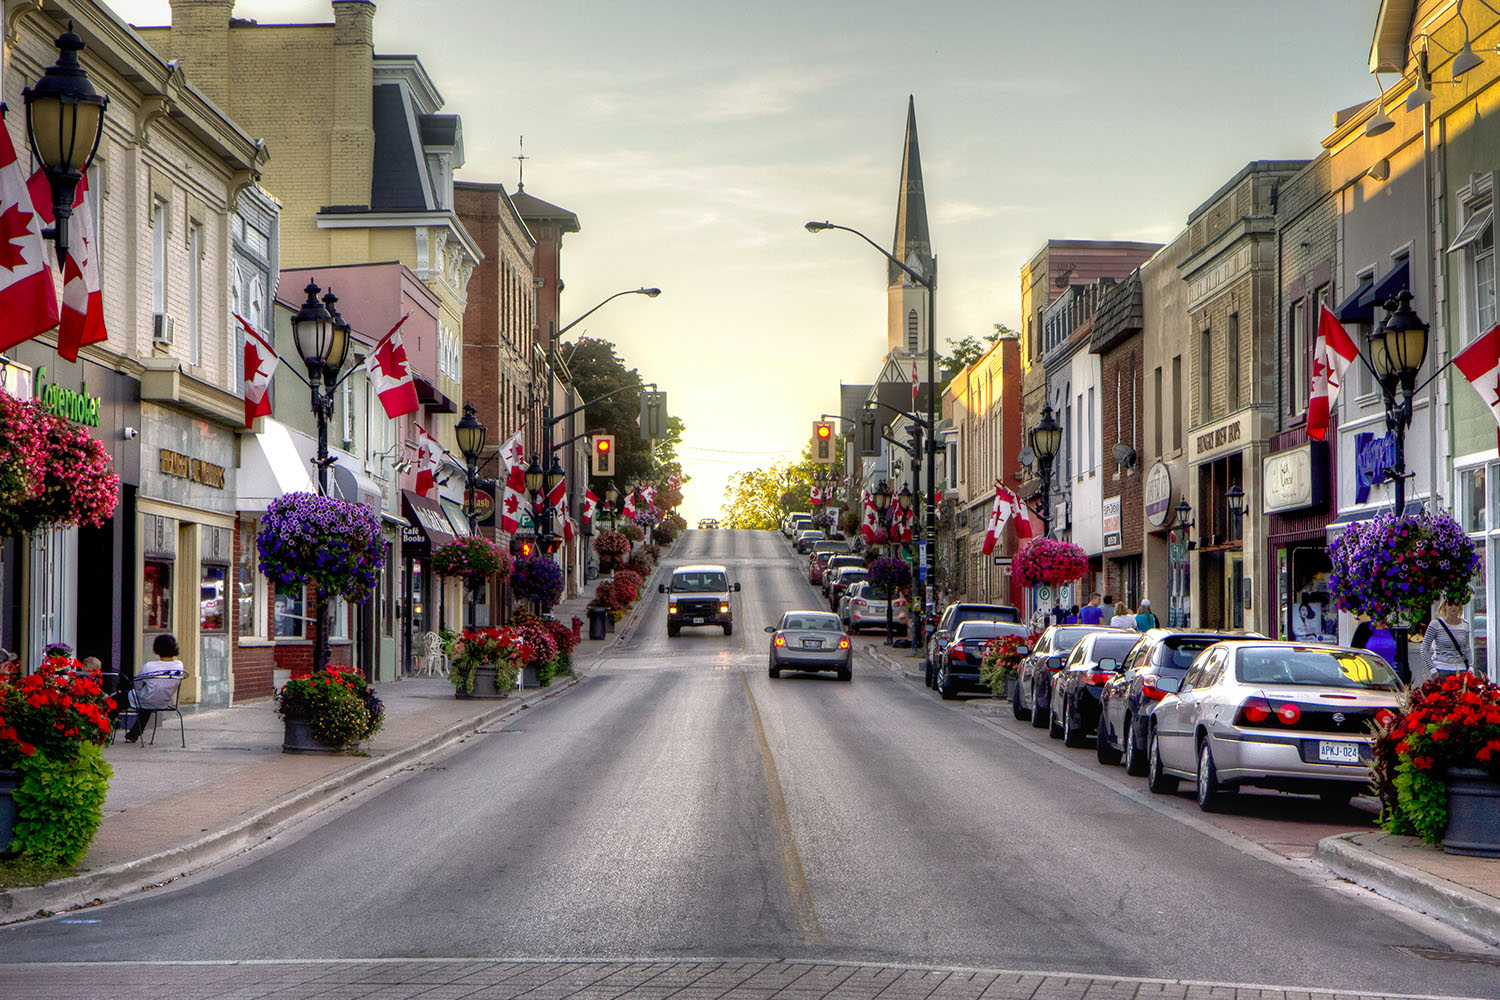 Image Source https://greatplacesincanada.ca/wp-content/uploads/2016/08/Adrian_Cammaert-2_-_Historic_Main_Street_looking_North.jpg